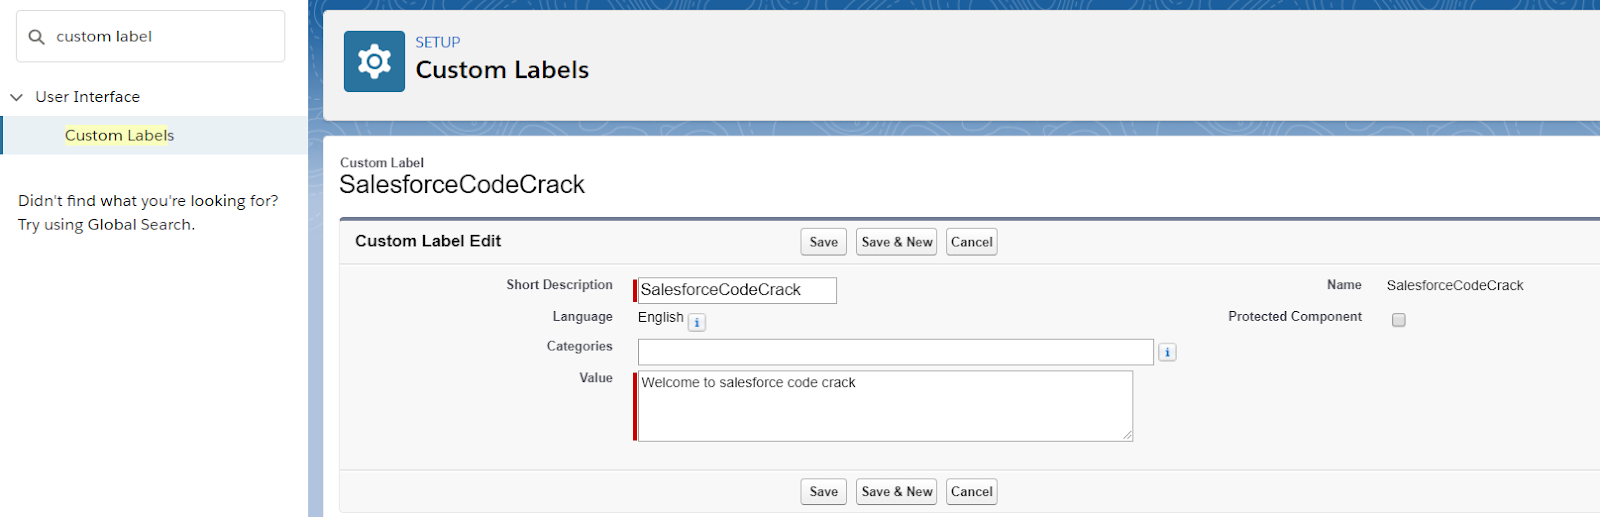 How to access Custom Labels in Lightning Web Components(lwc